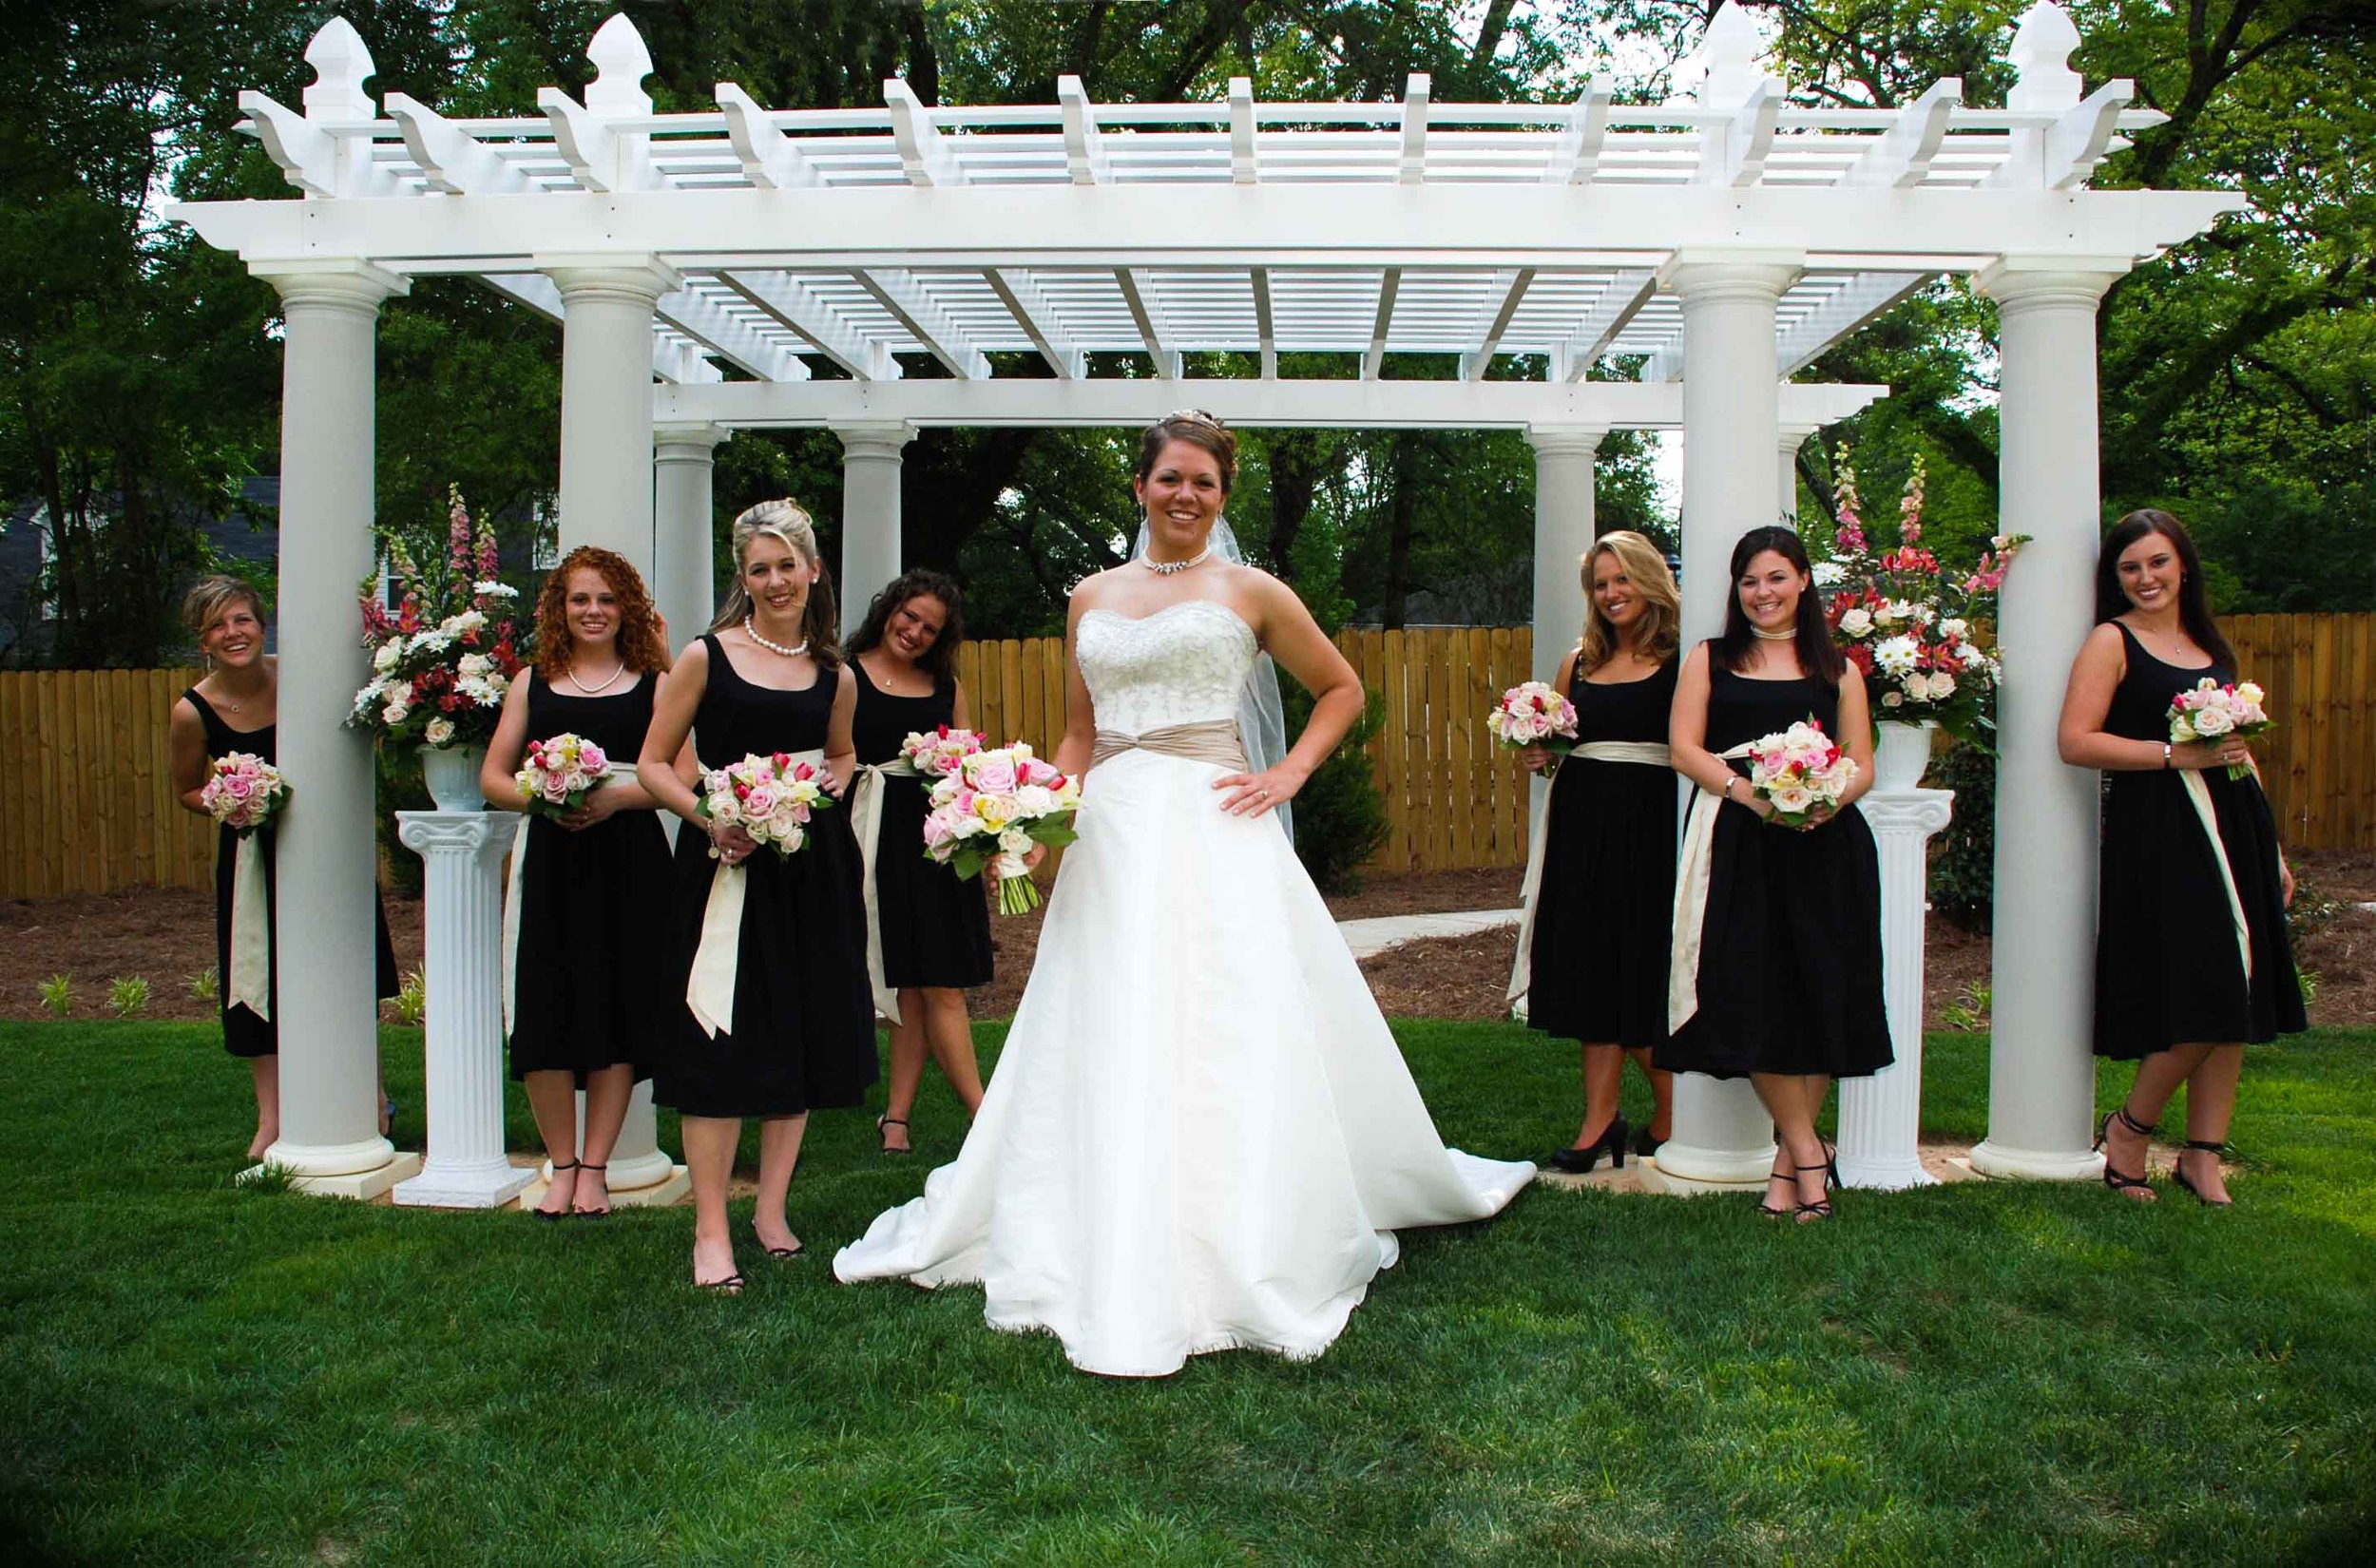 PLAY > The Wedding Day Experience